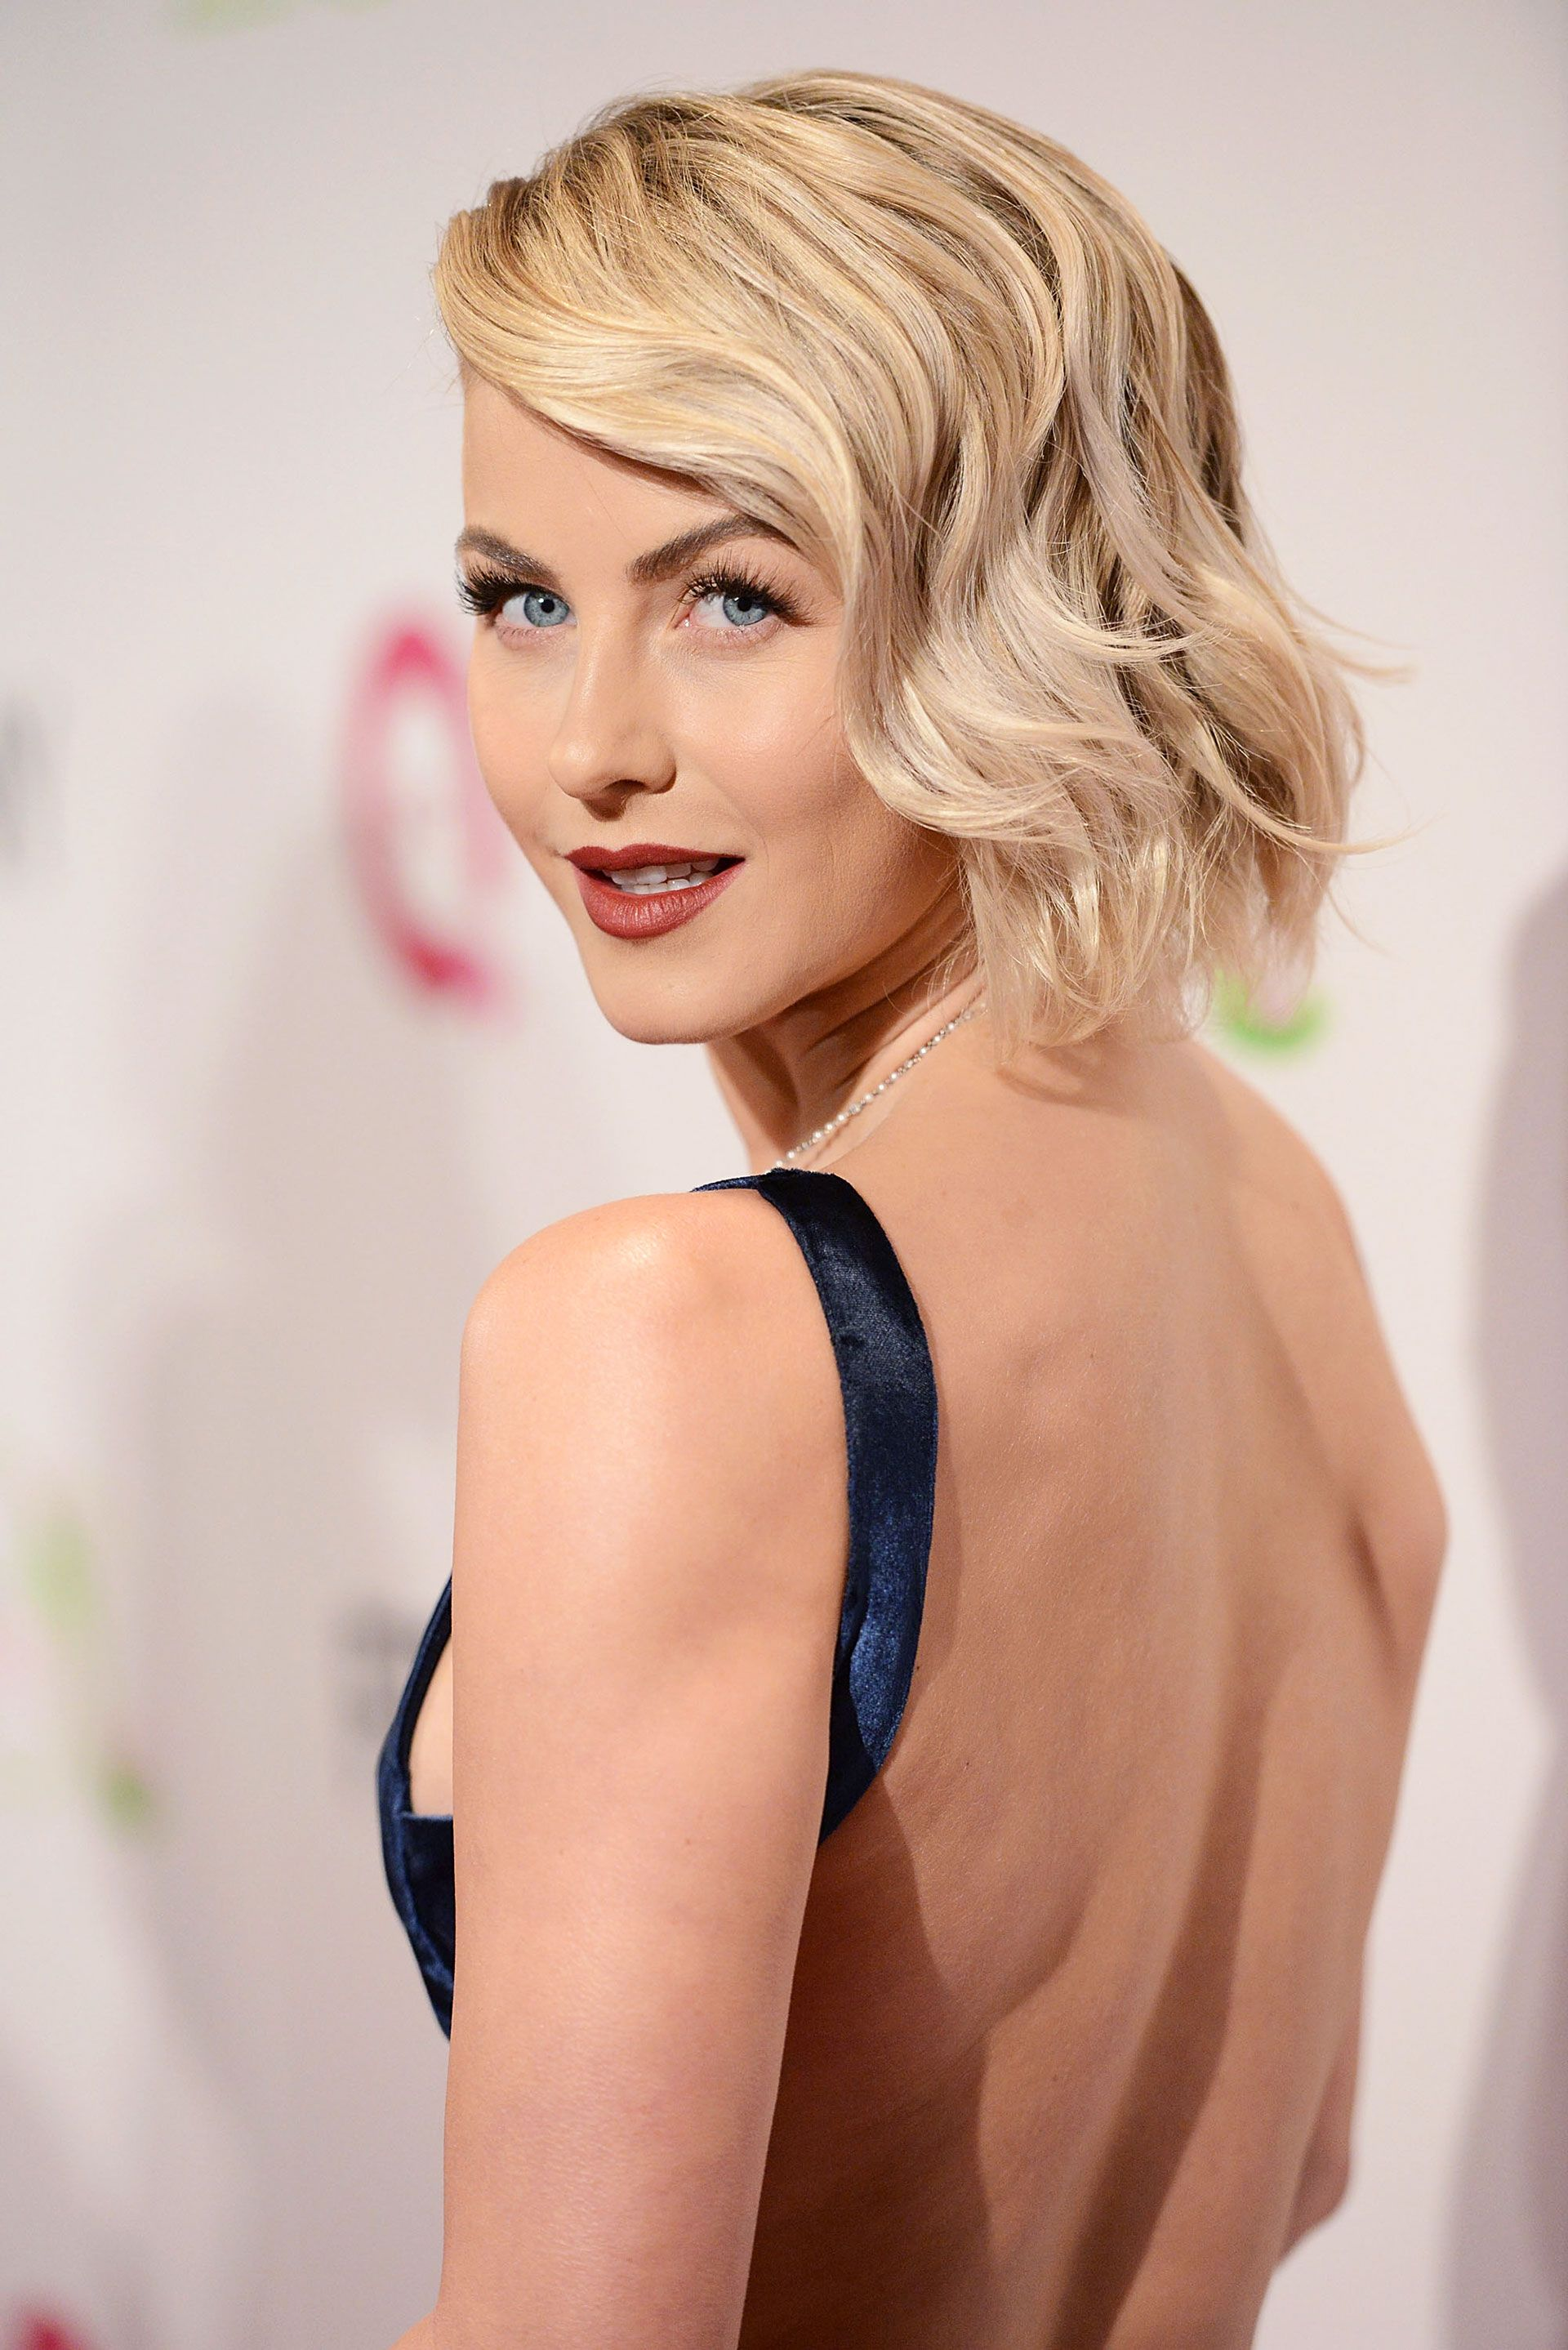 15 Best Short Curly Hairstyles Haircuts For Short Curly Hair